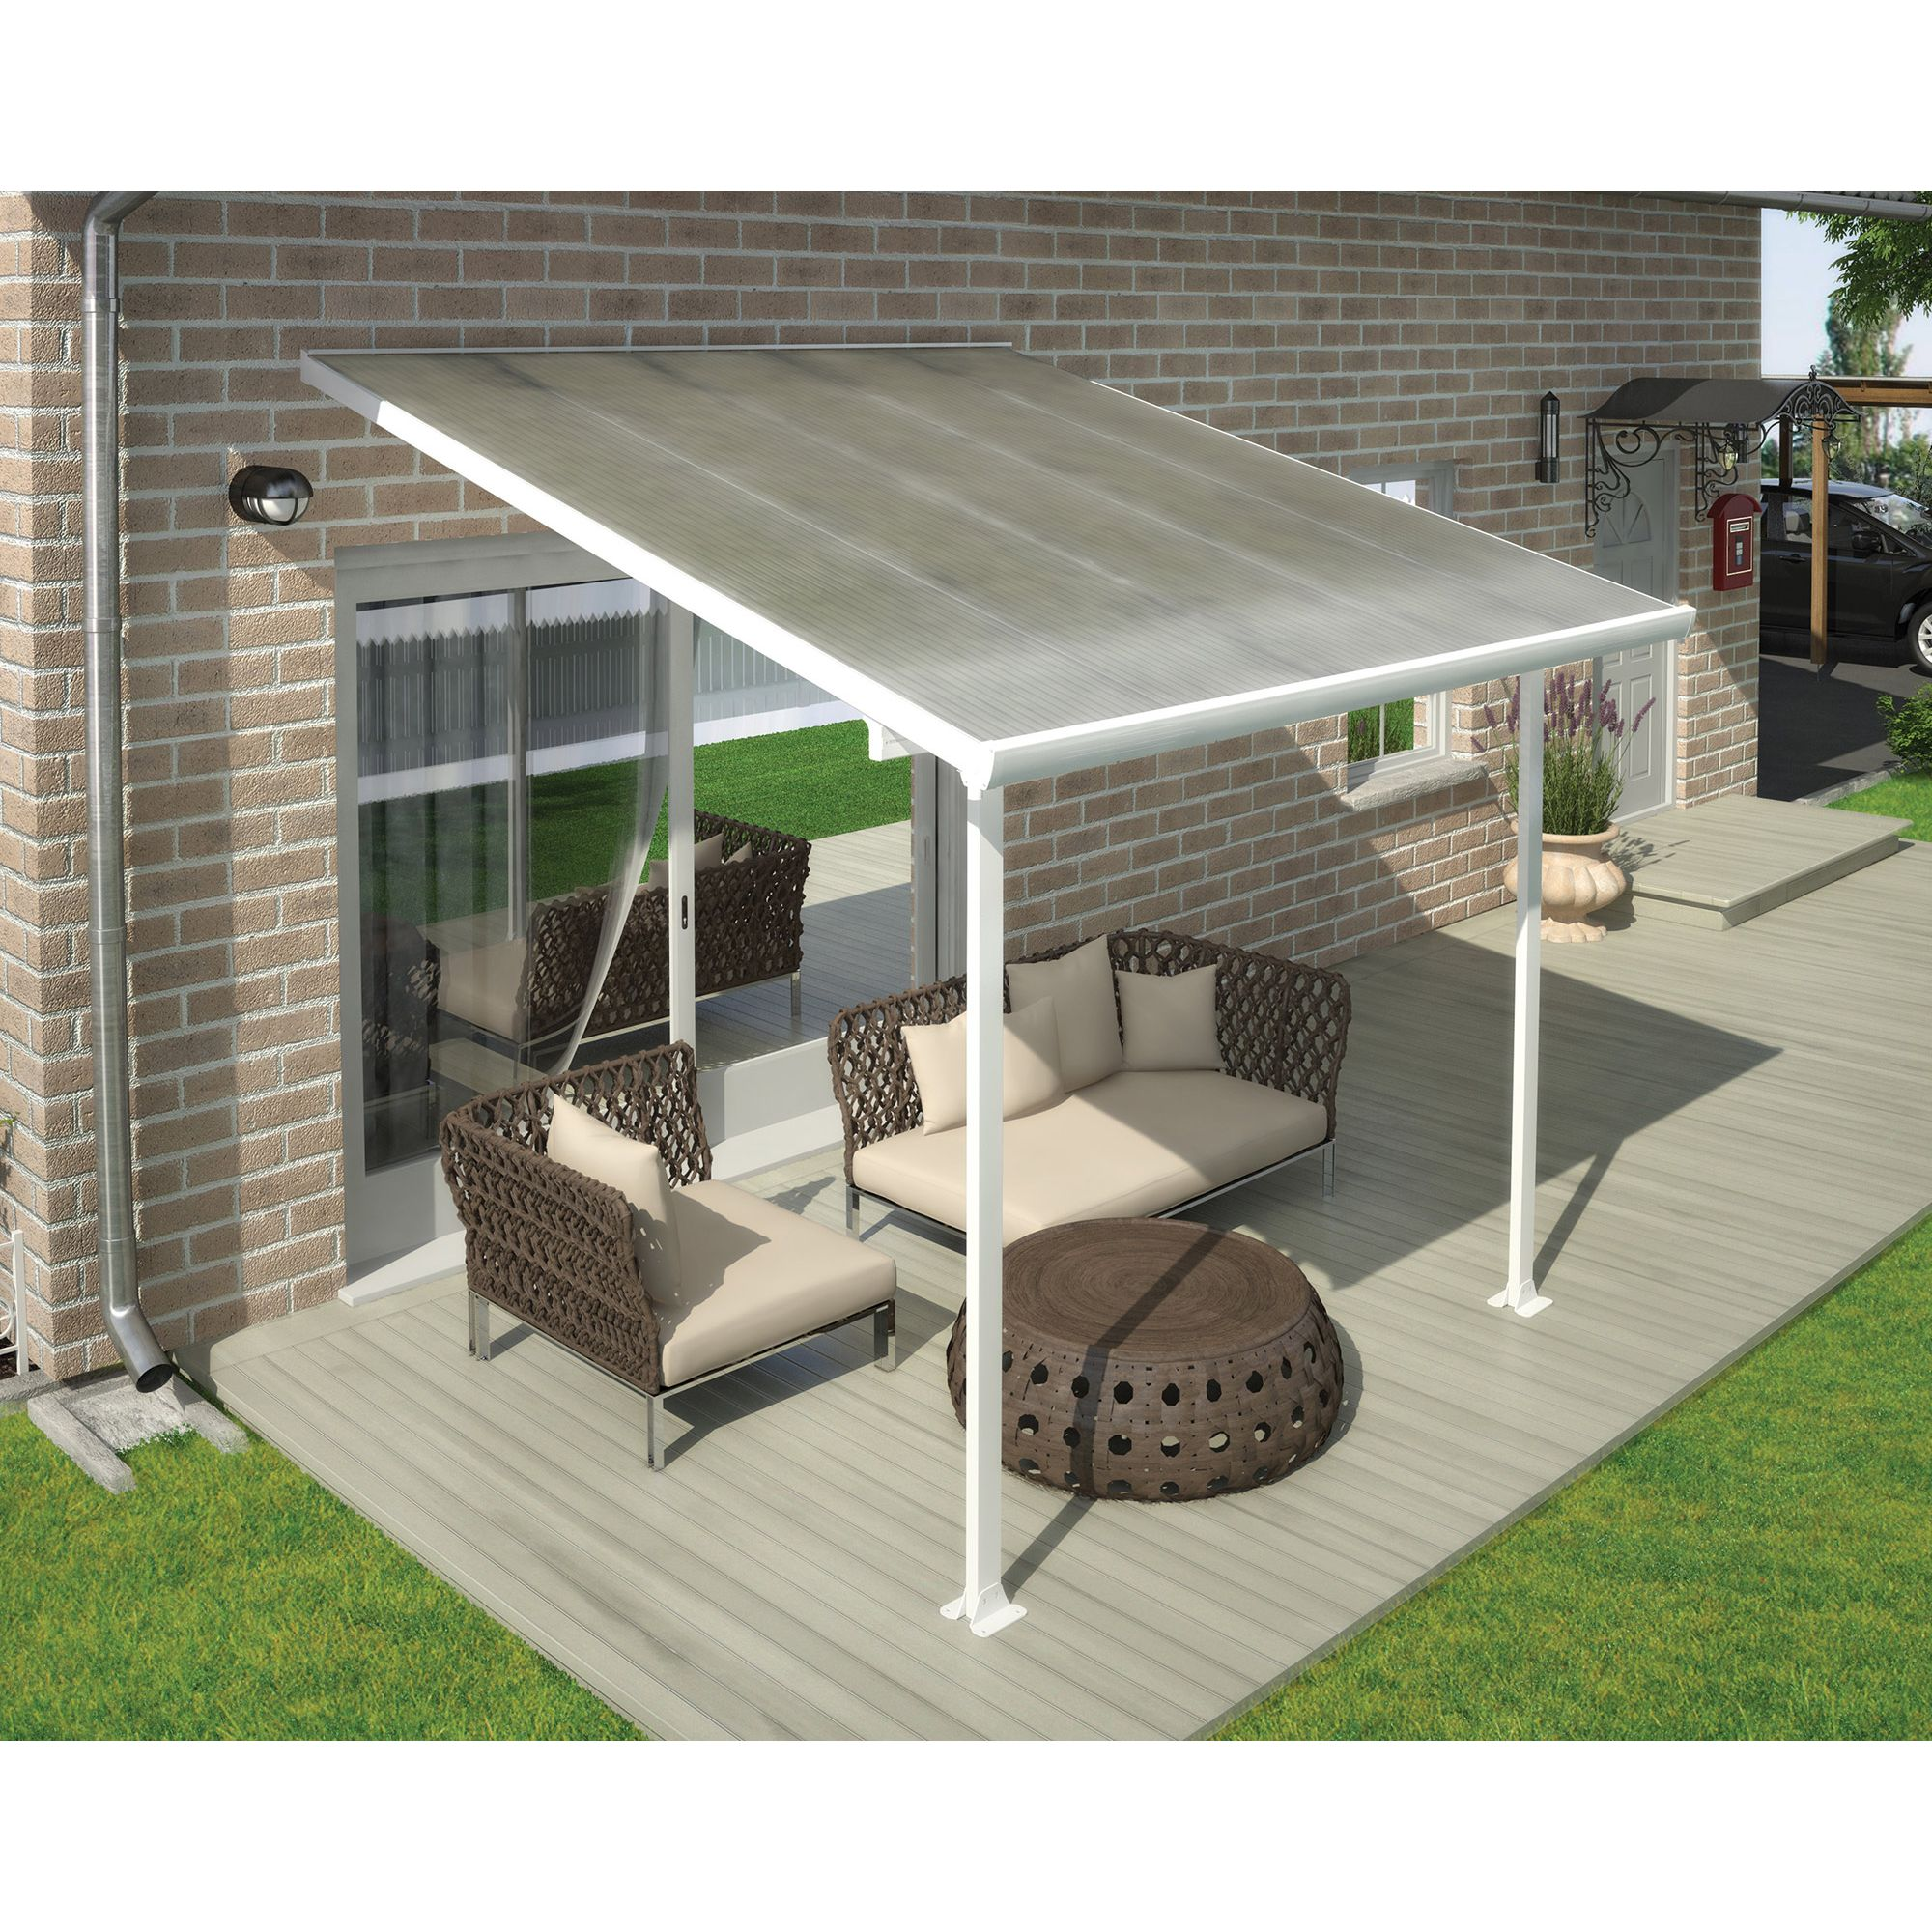 FERIA LEAN TO CARPORT AND PATIO COVER 3X3 WHITE at Tesco Direct